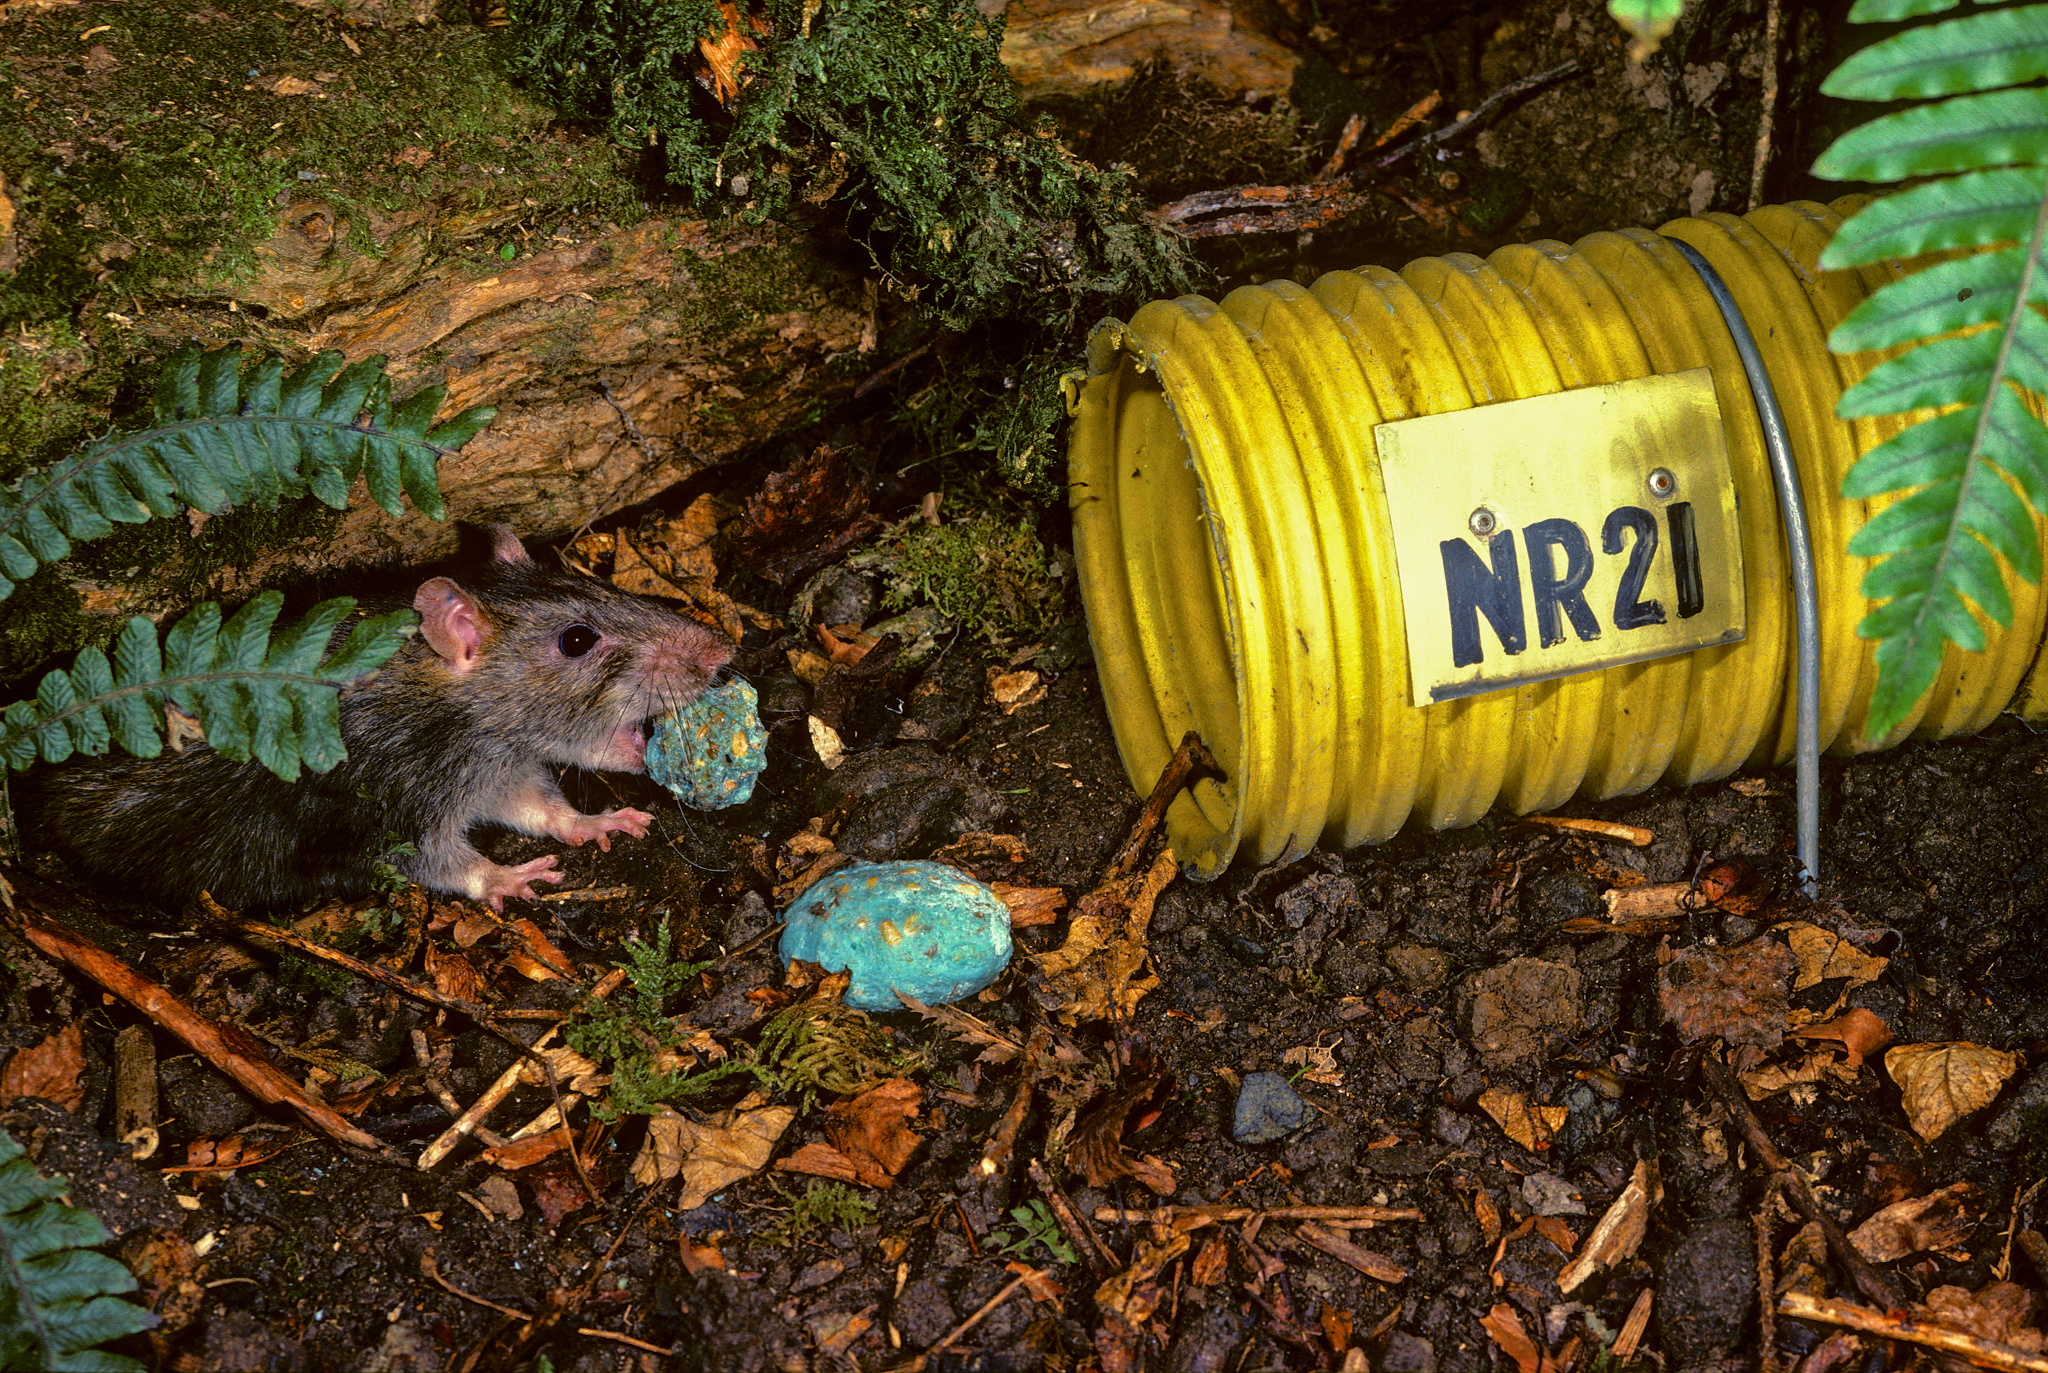 A Norway rat (Rattus norvegicus) snatches poisoned bait on Breaksea Island in Fiordland National Park. Bait stations like these eventually led to the eradication of rats from the island, and other islands followed. Photograph by Rod Morris / www.rodmorris.co.nz